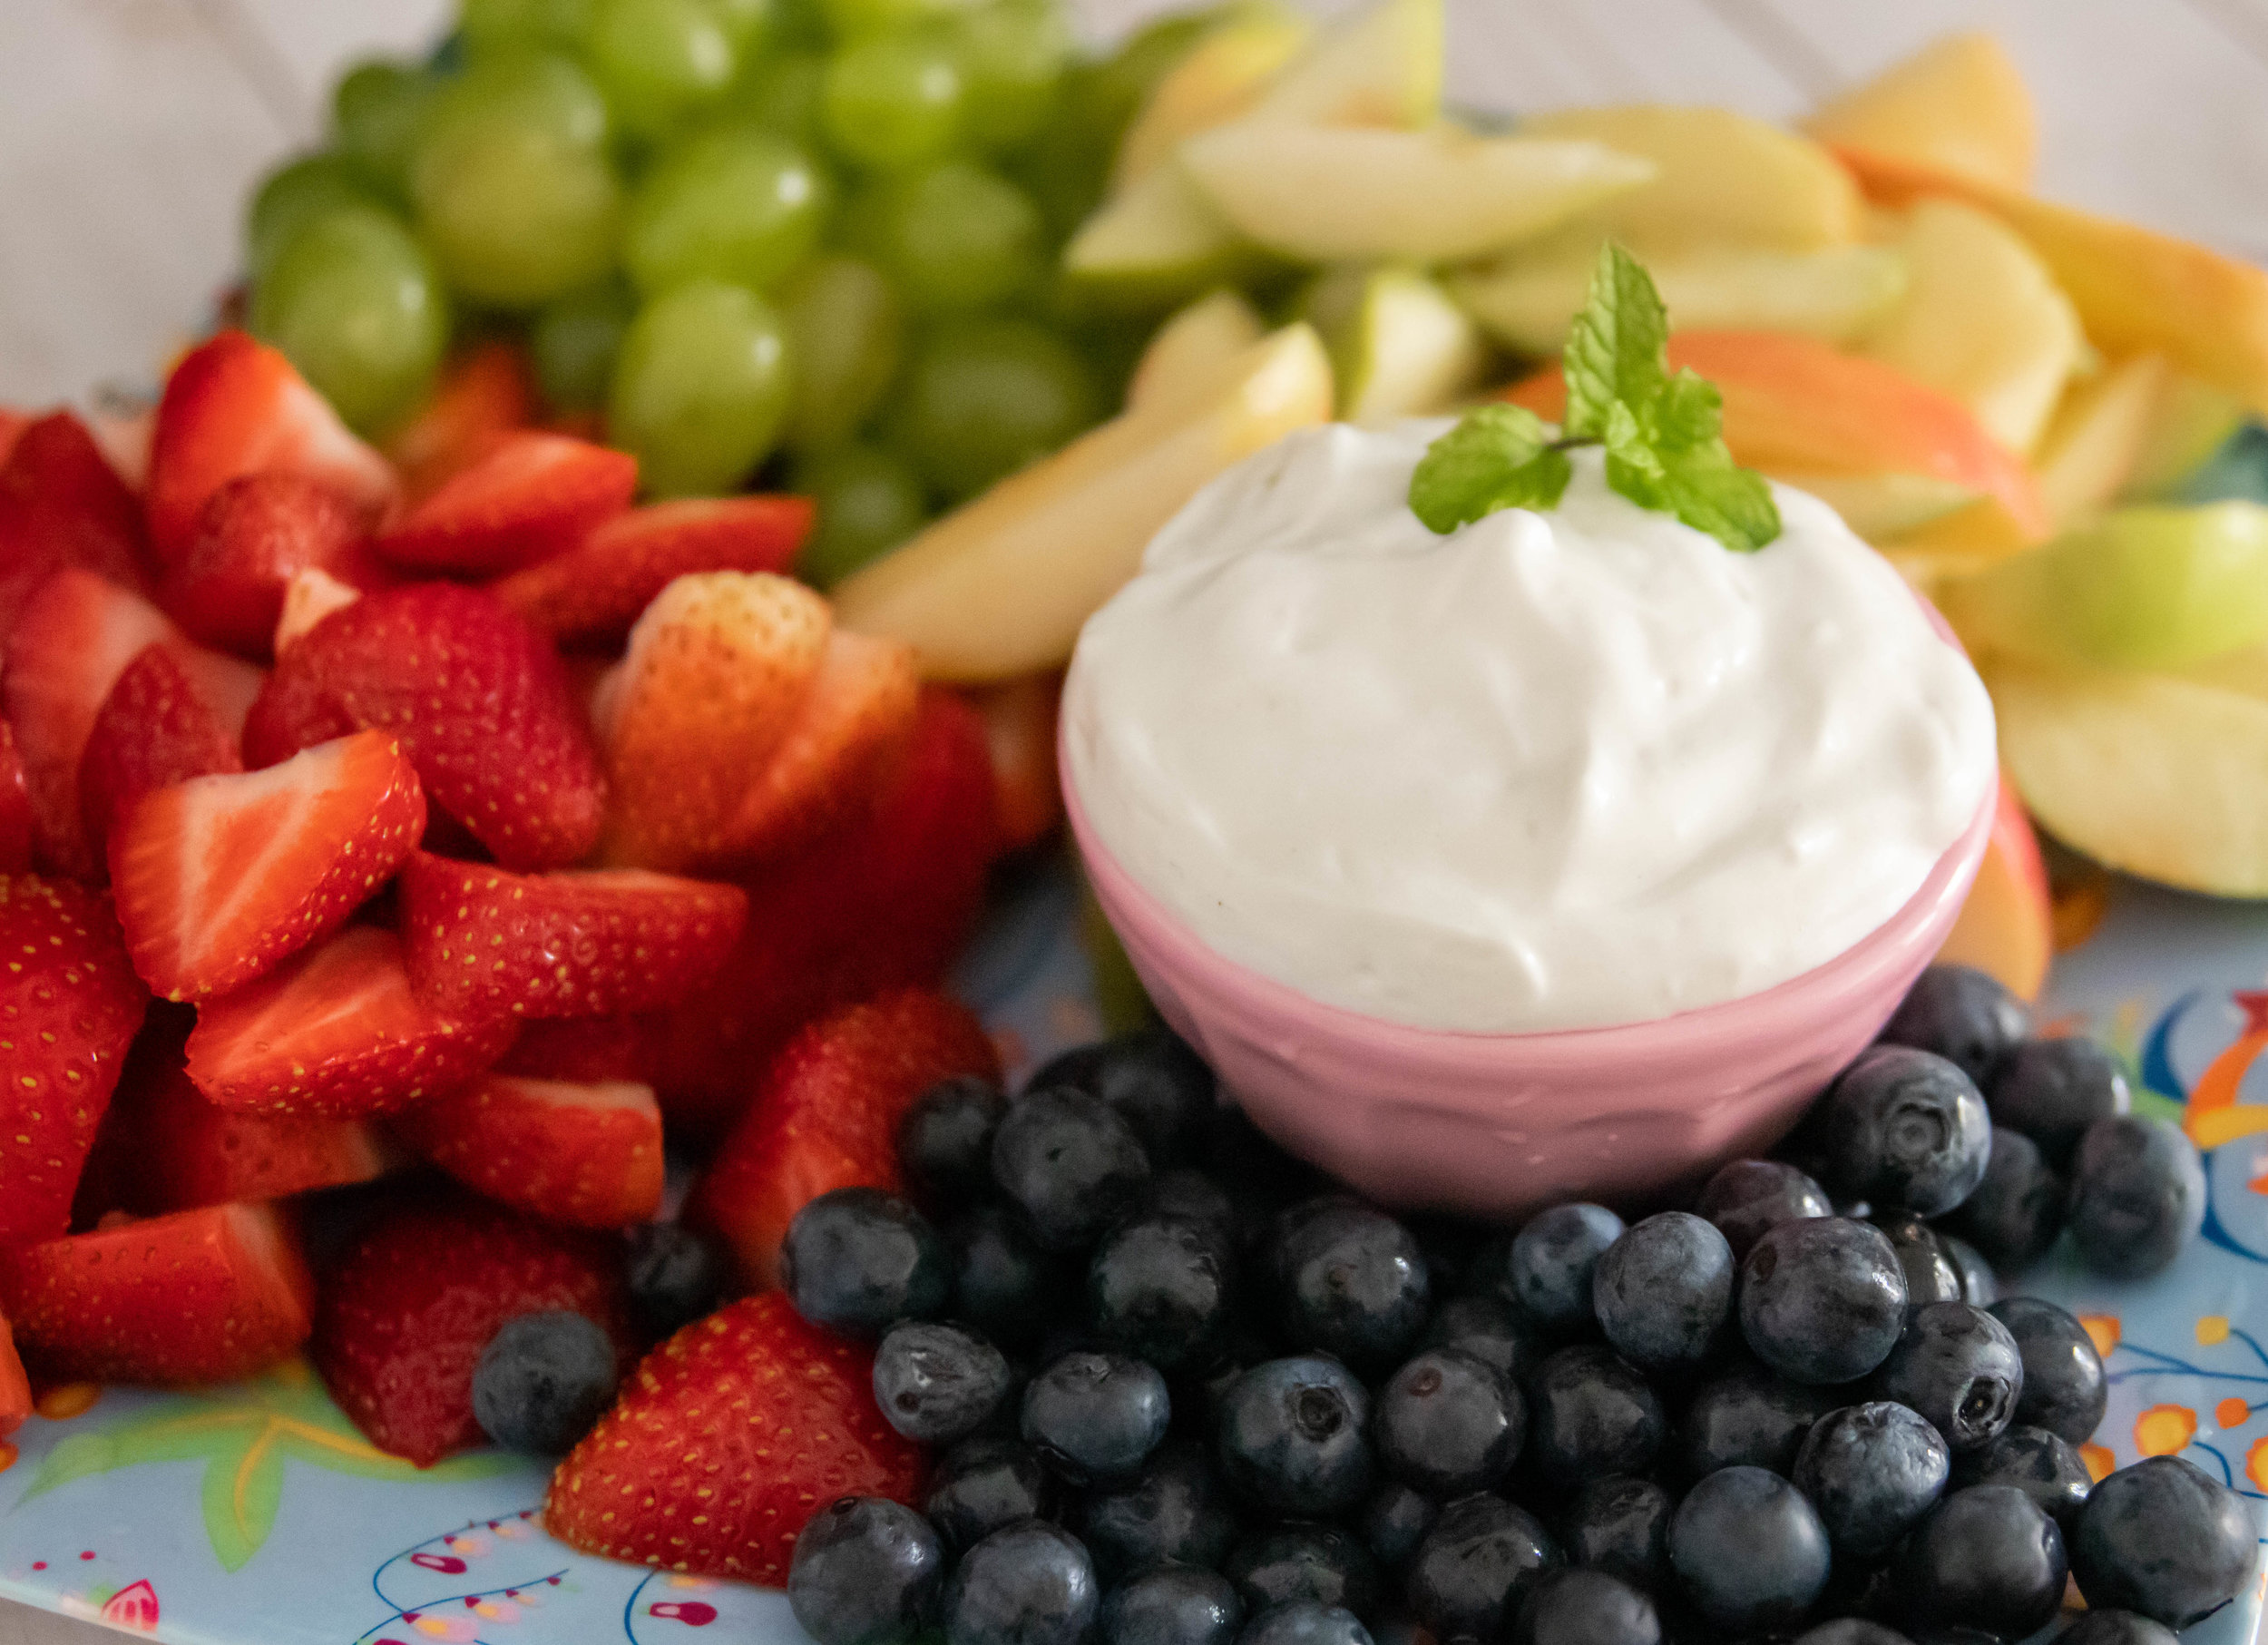 Vegan marshmallow cream cheese fruit dip surrounded by strawberries, grapes, blueberries, and apples.